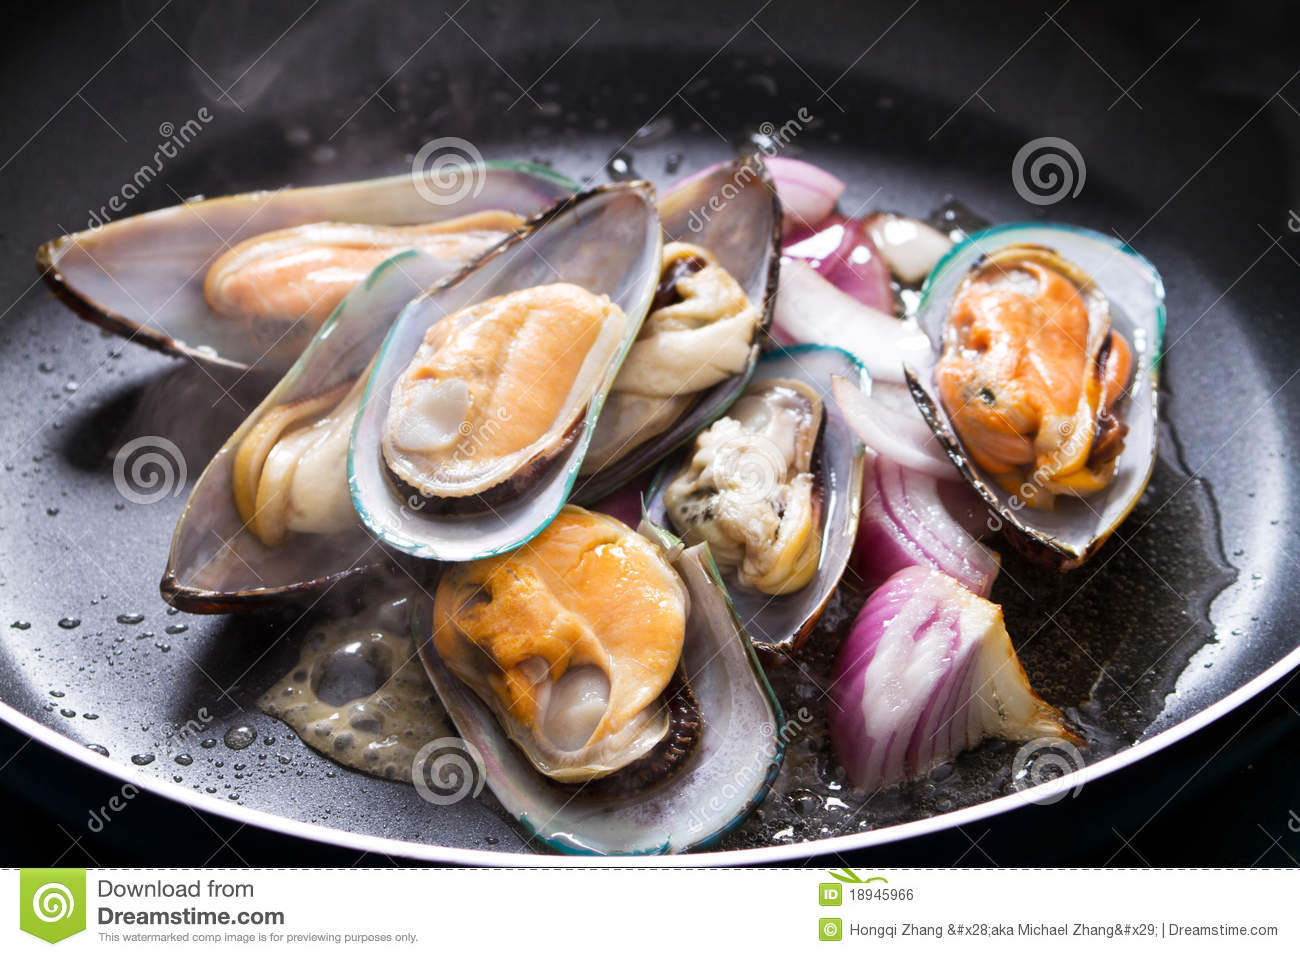 Mussel and onion